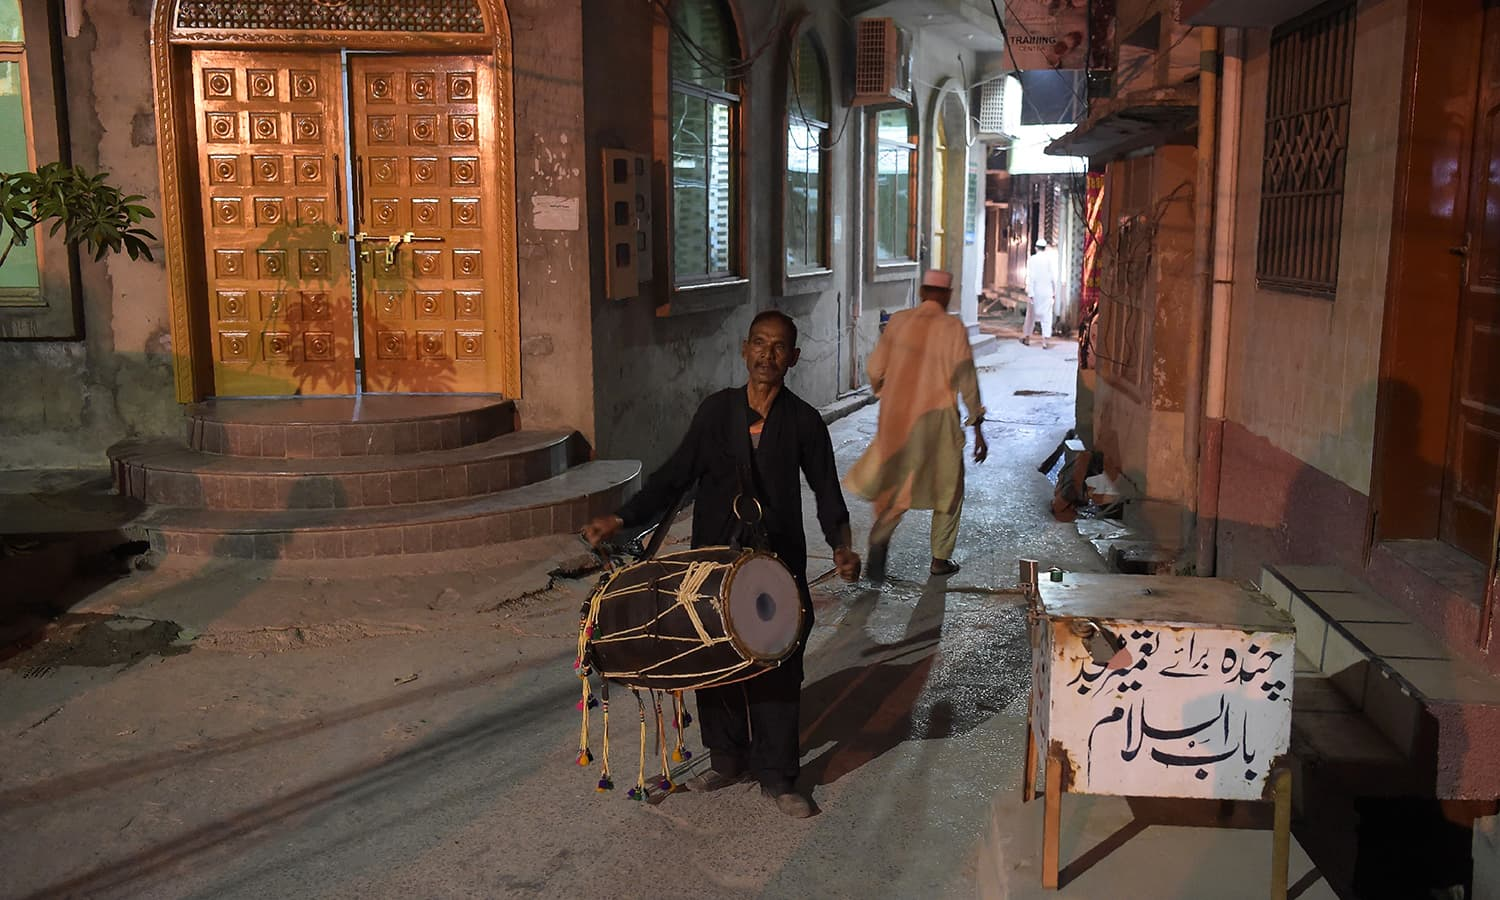 Lal Hussain walks around a residential area, beating his drum to wake people up for sehri. — AFP